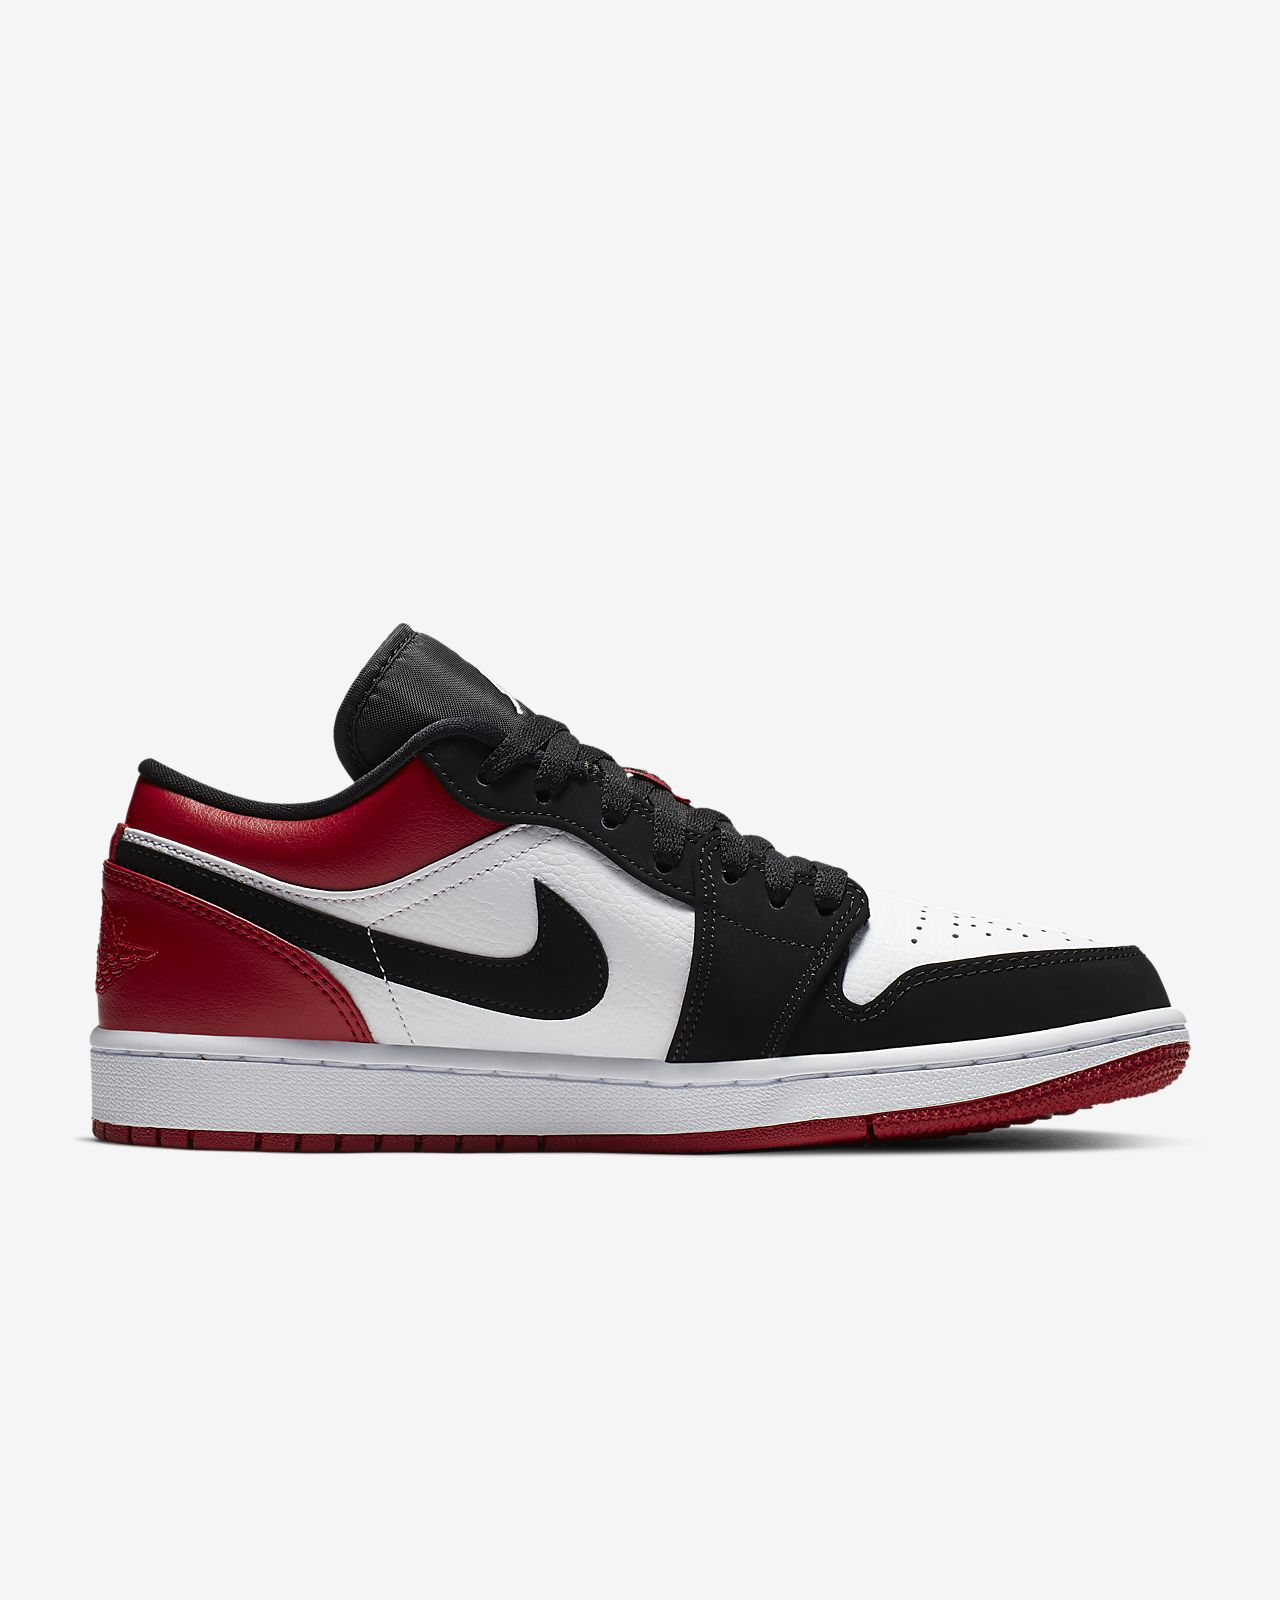 premium selection 9d5d3 8dc9a ... Air Jordan 1 Low Men s Shoe